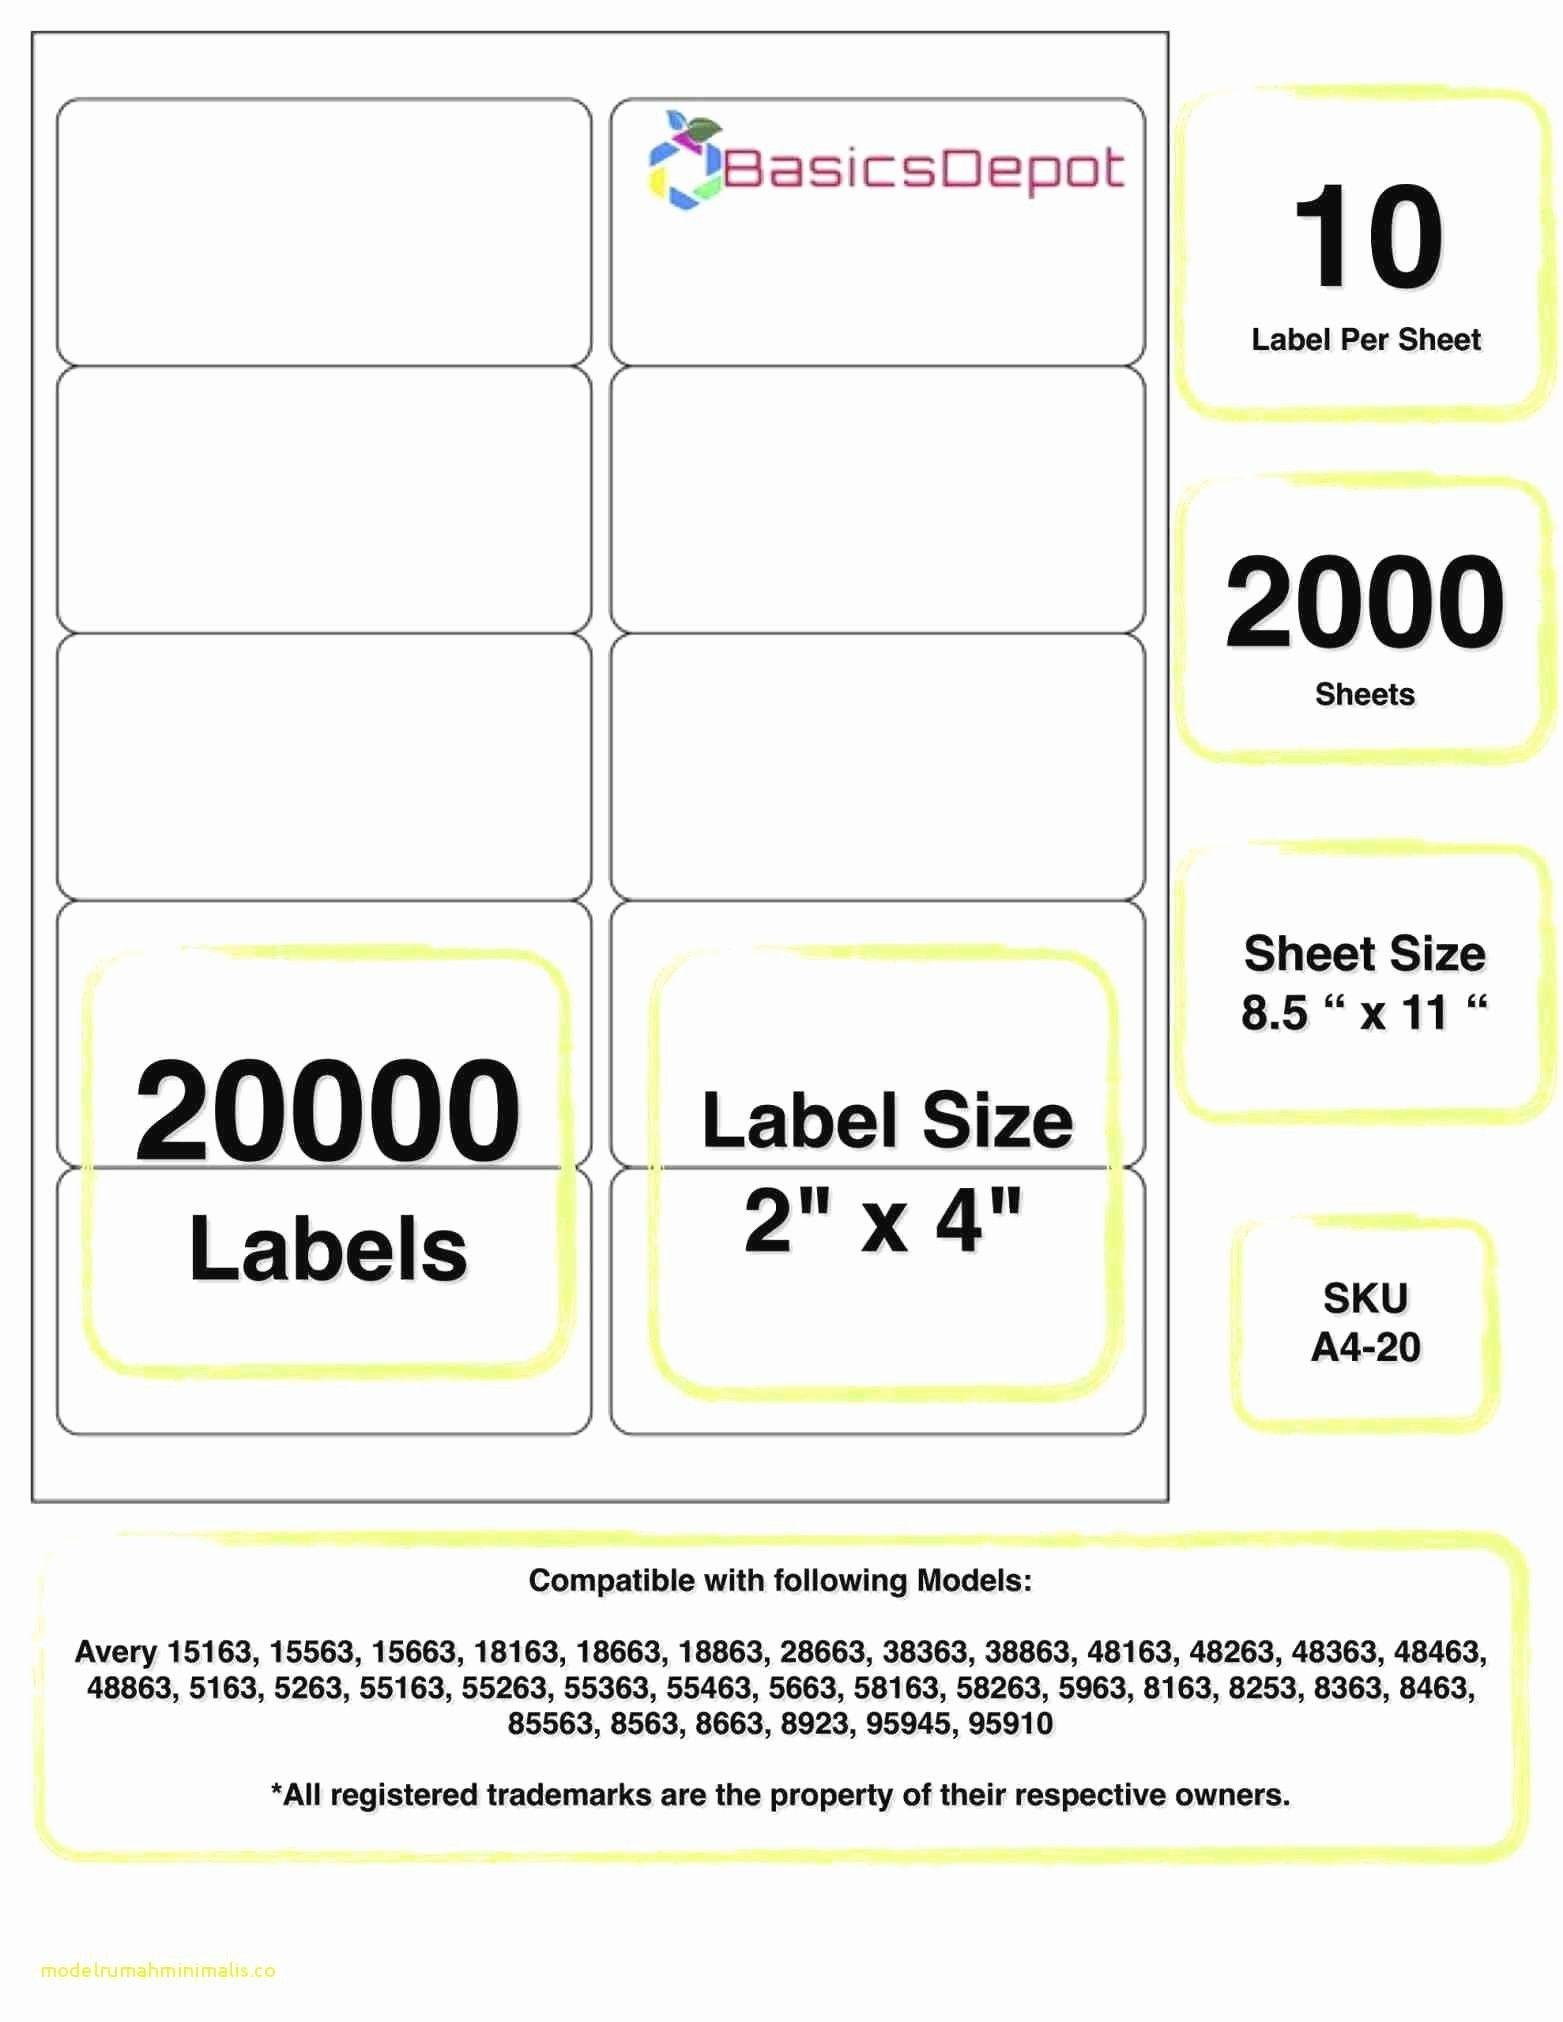 Avery 5164 Shipping Label Template Lovely New Avery Shipping Labels 5263 Label Templates Printable Label Templates Avery Labels Avery shipping label templates 5164